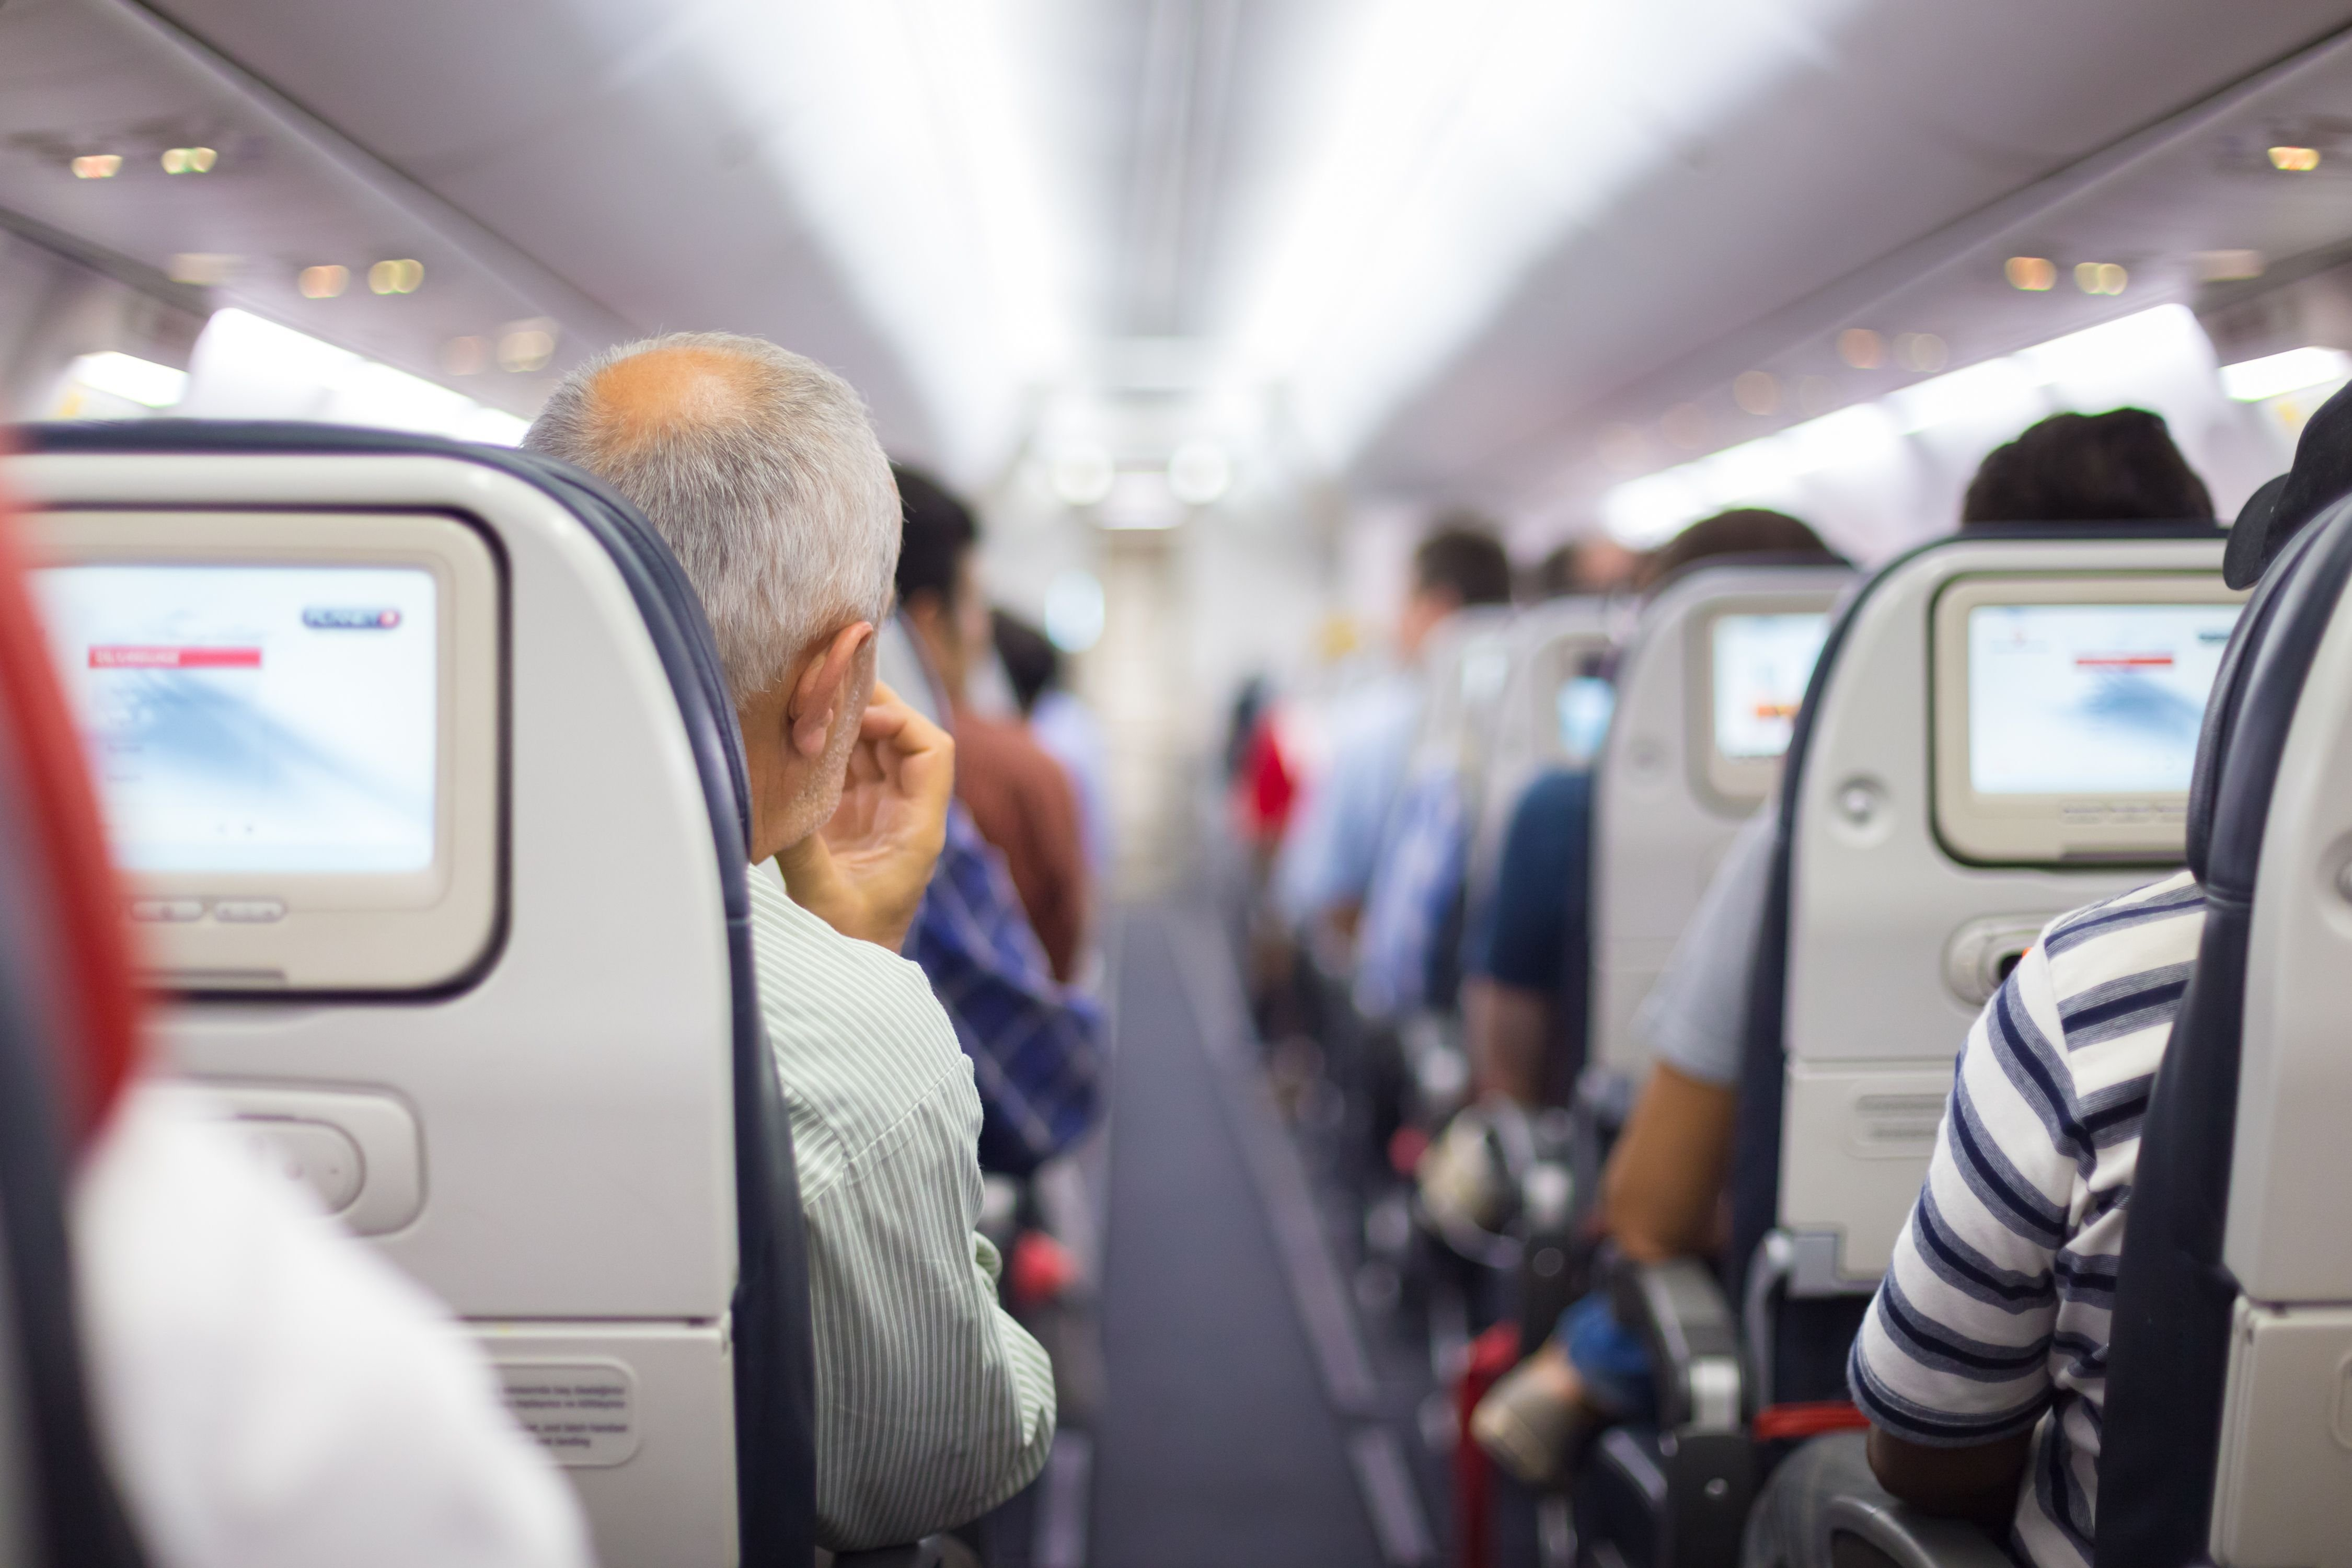 An airplane aisle taken from behind. | Source: Shutterstock